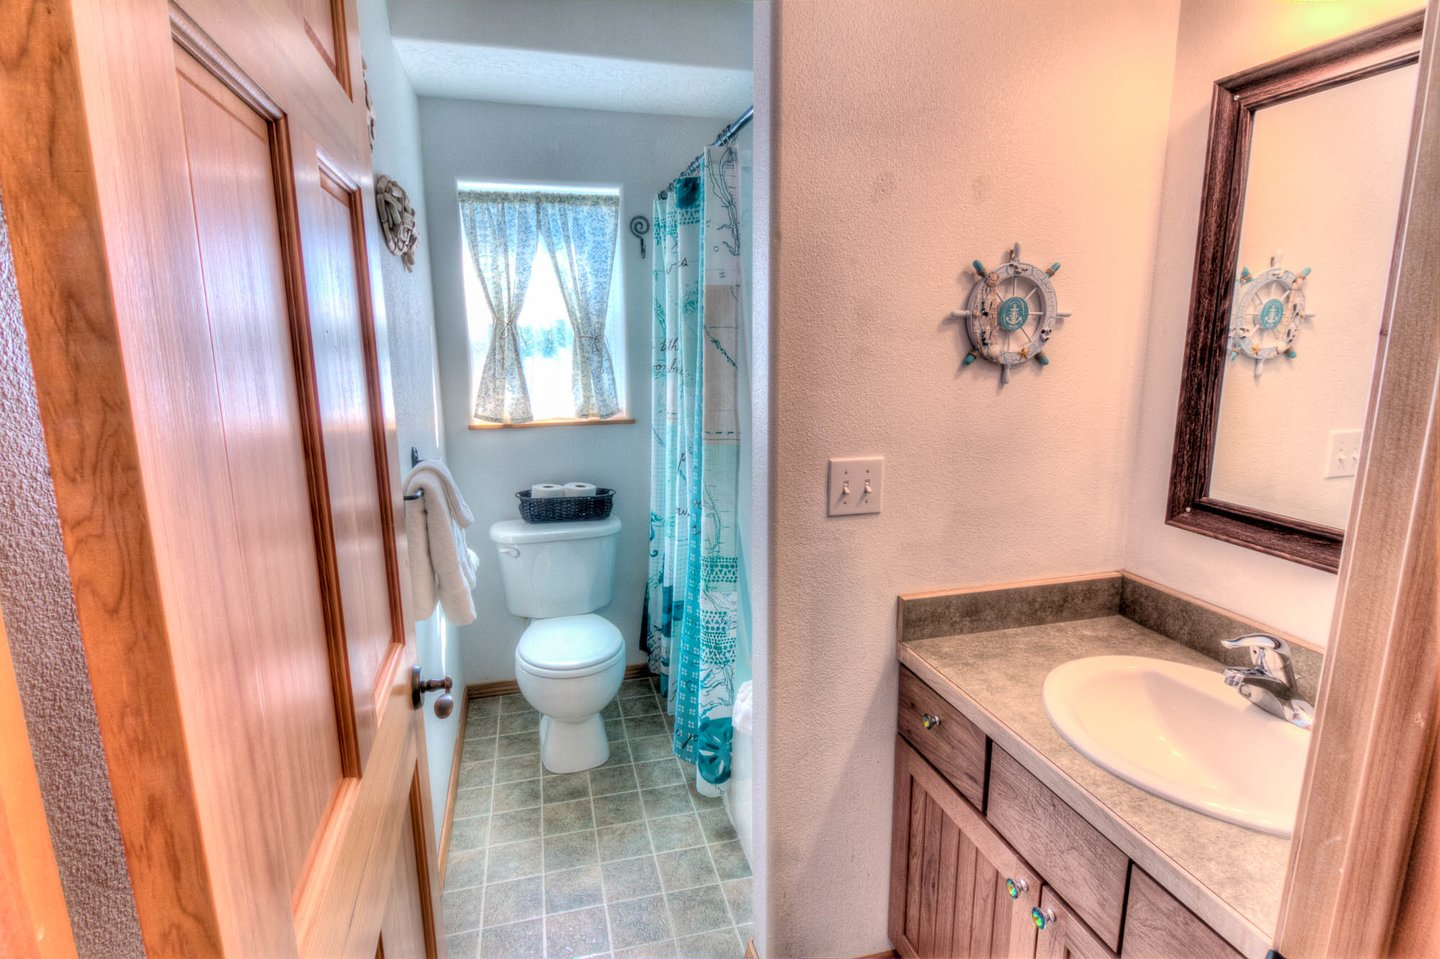 Shared bathroom in the hallway.